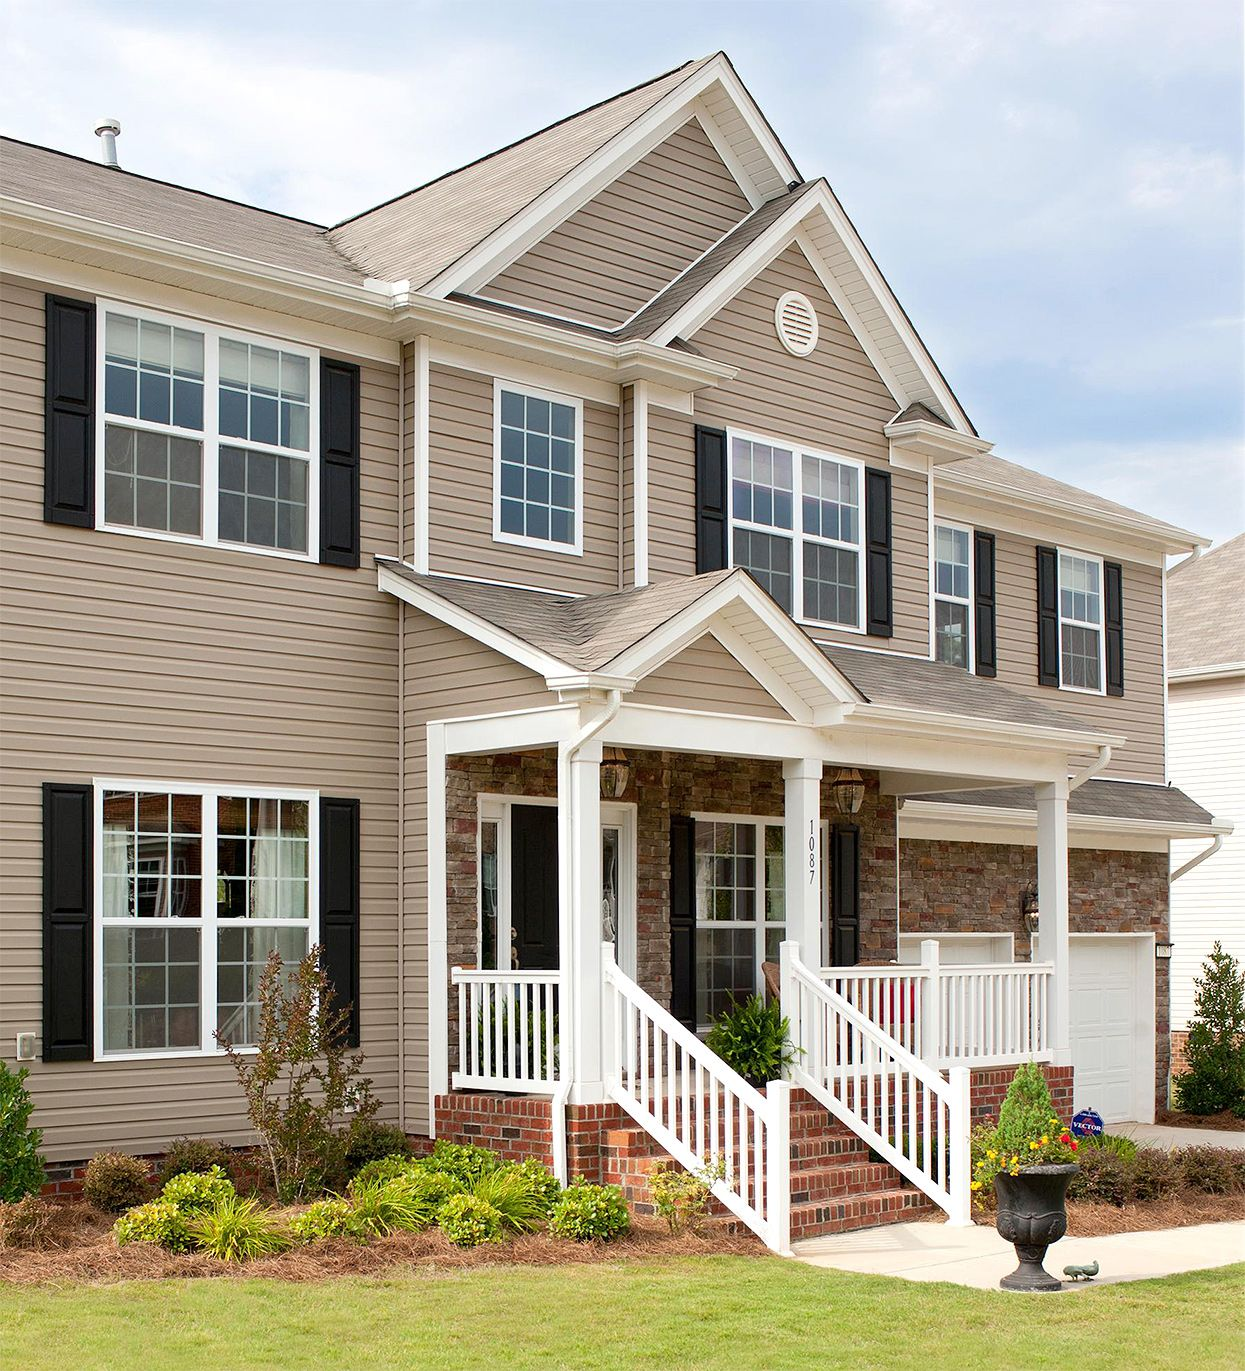 Refresh Your Home With These Gorgeous Exterior Color Schemes In 2020 House Shutters Exterior Paint Colors For House Tan House